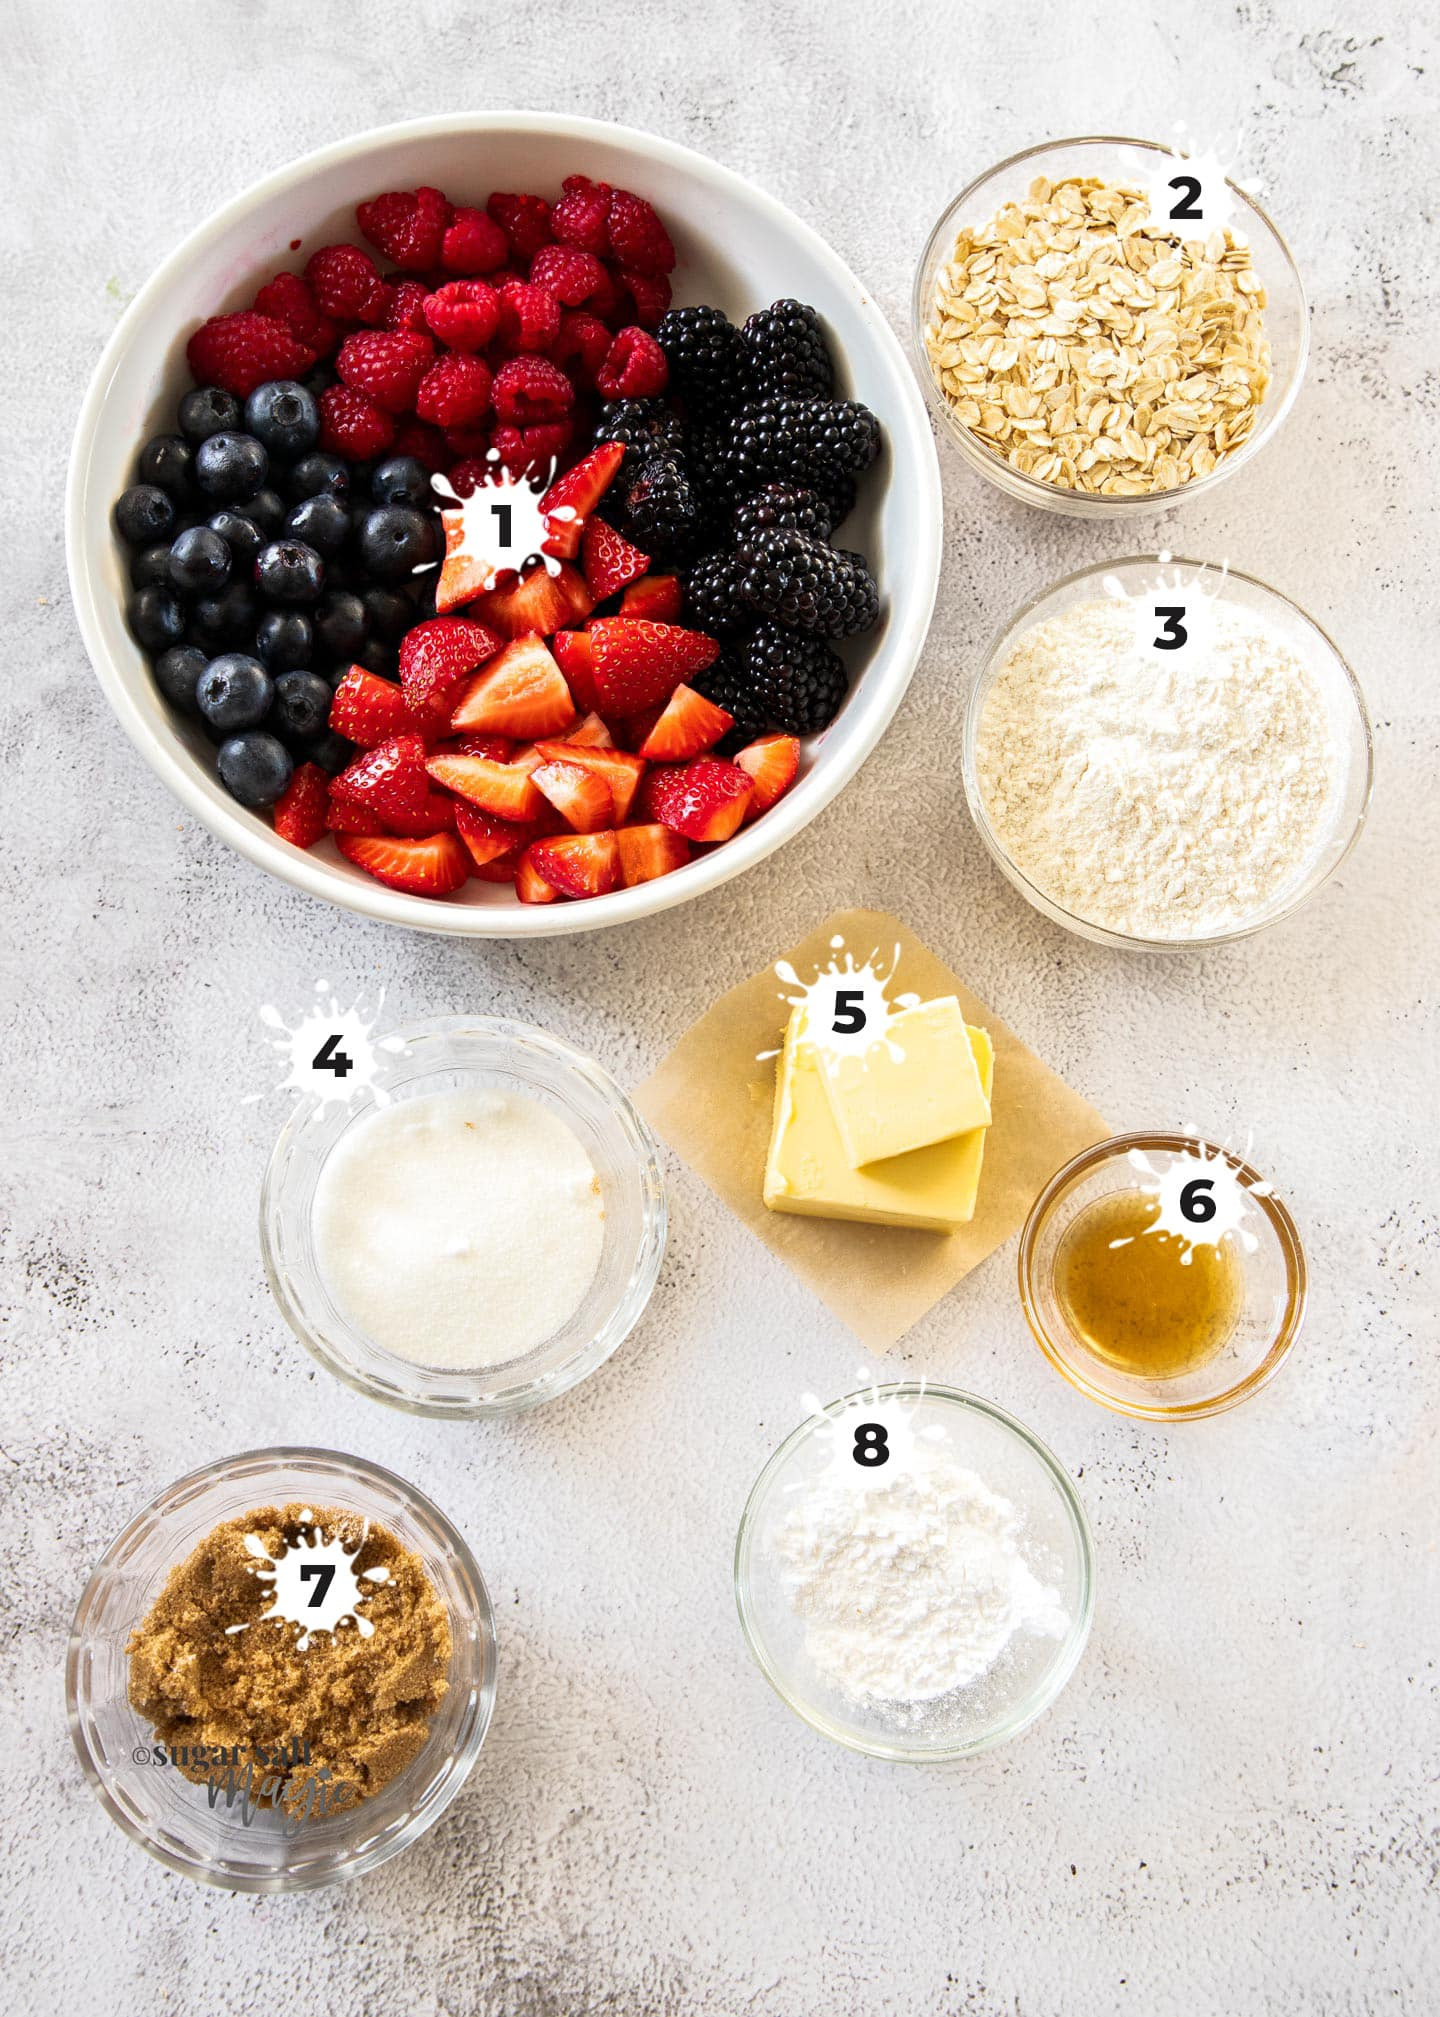 Ingredients for mixed berry crumble on a concrete benchtop